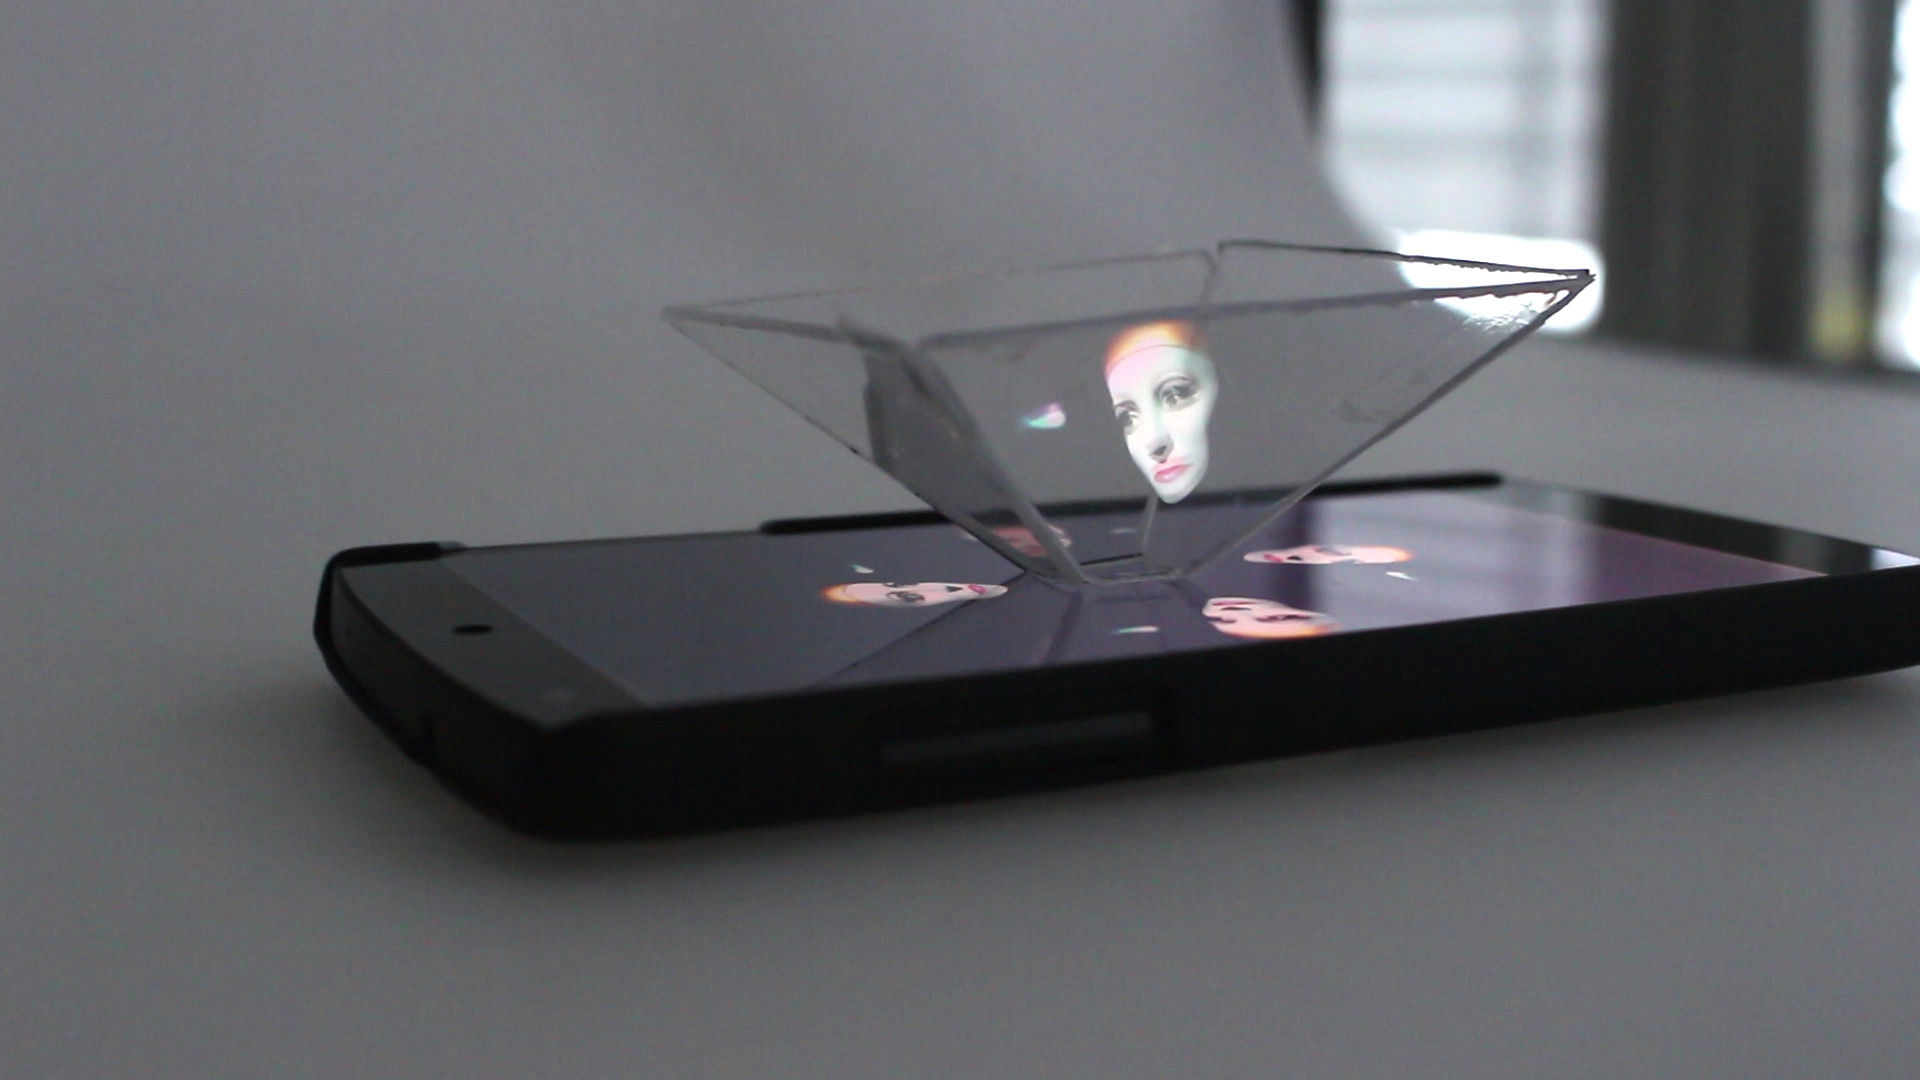 Smartphone Hologramm 3d Videos Mit Cd Hullen Upcycling Heise Online